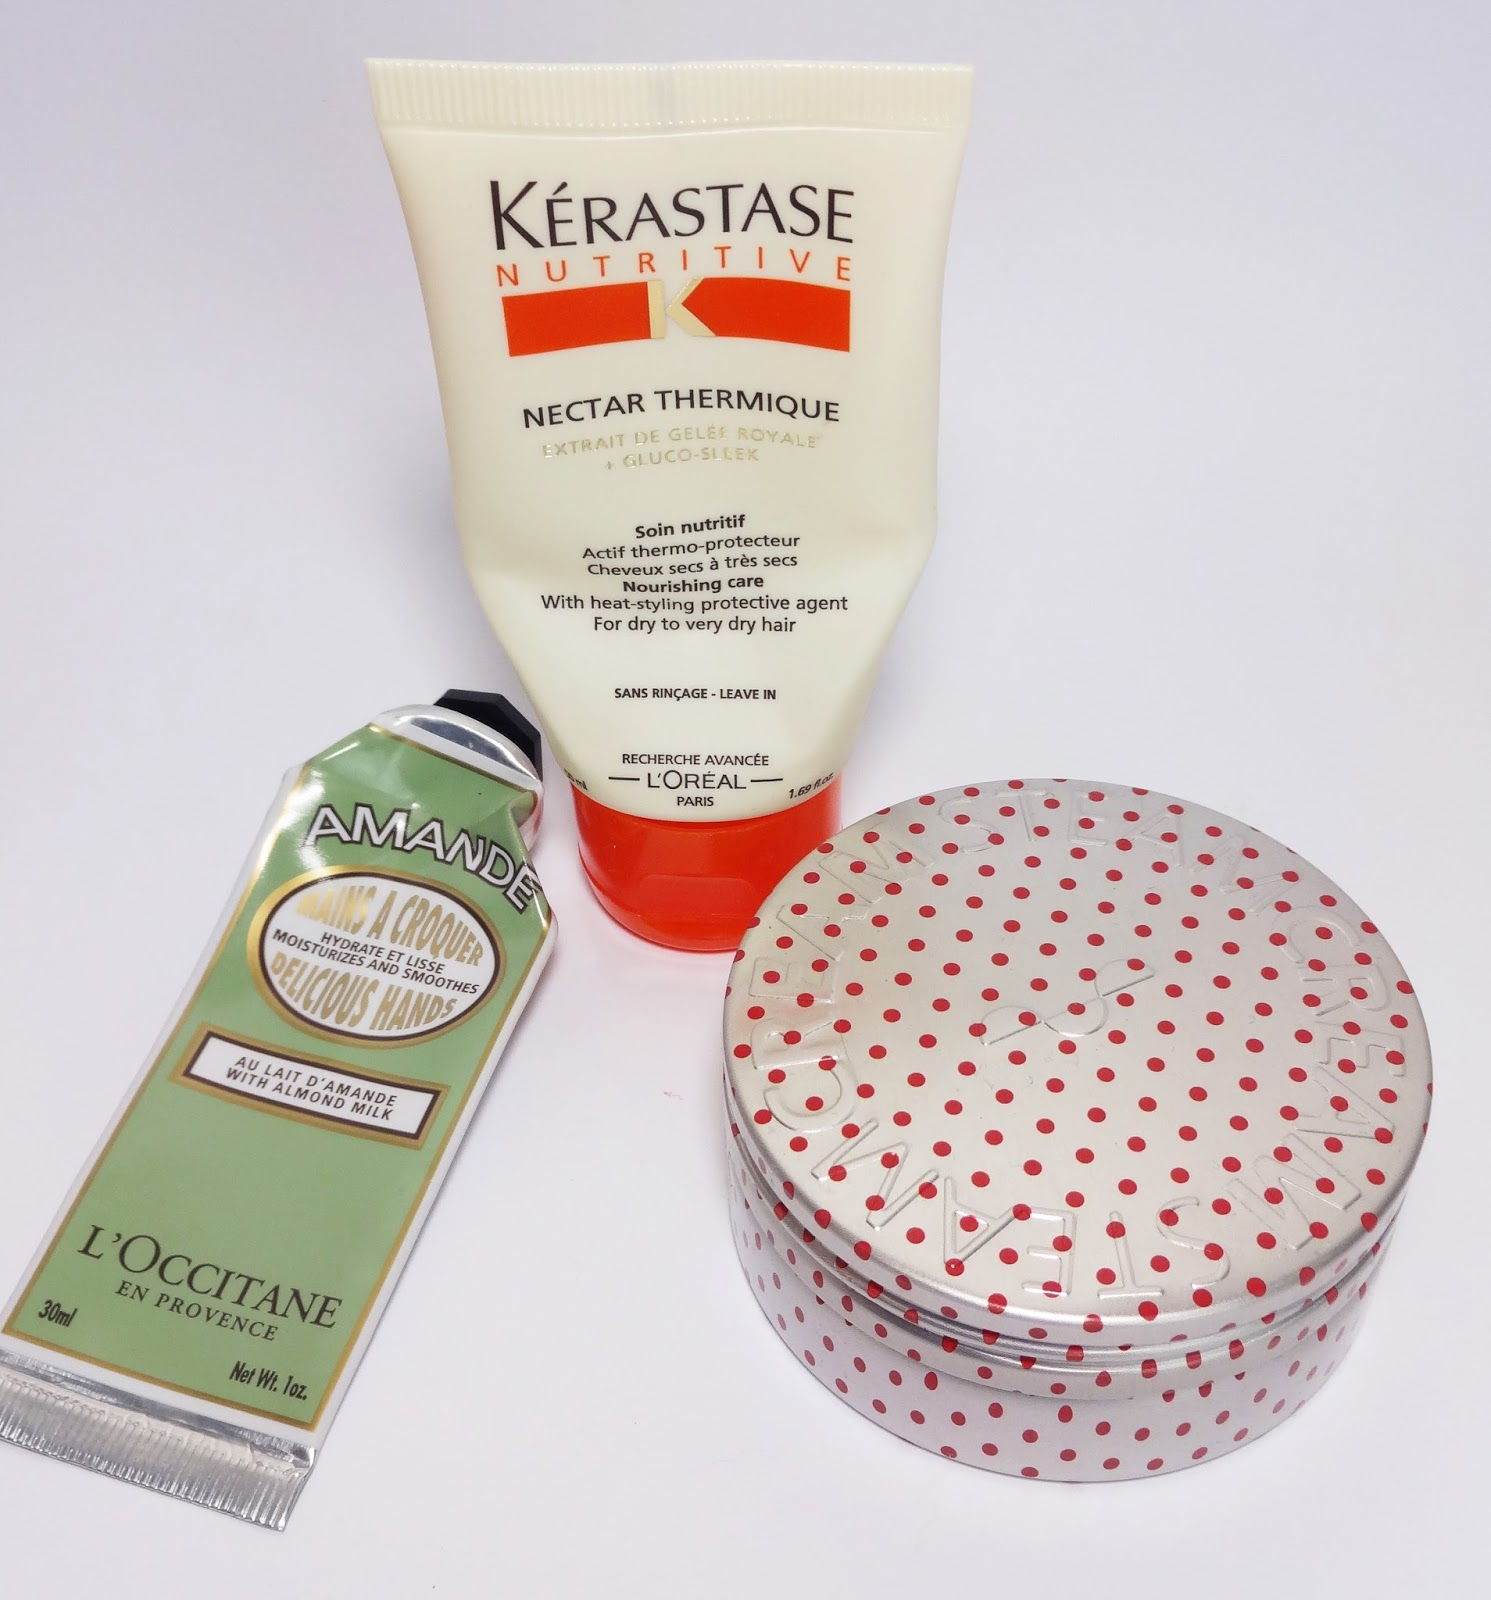 L'Occitane, Kerastase, Steamcream